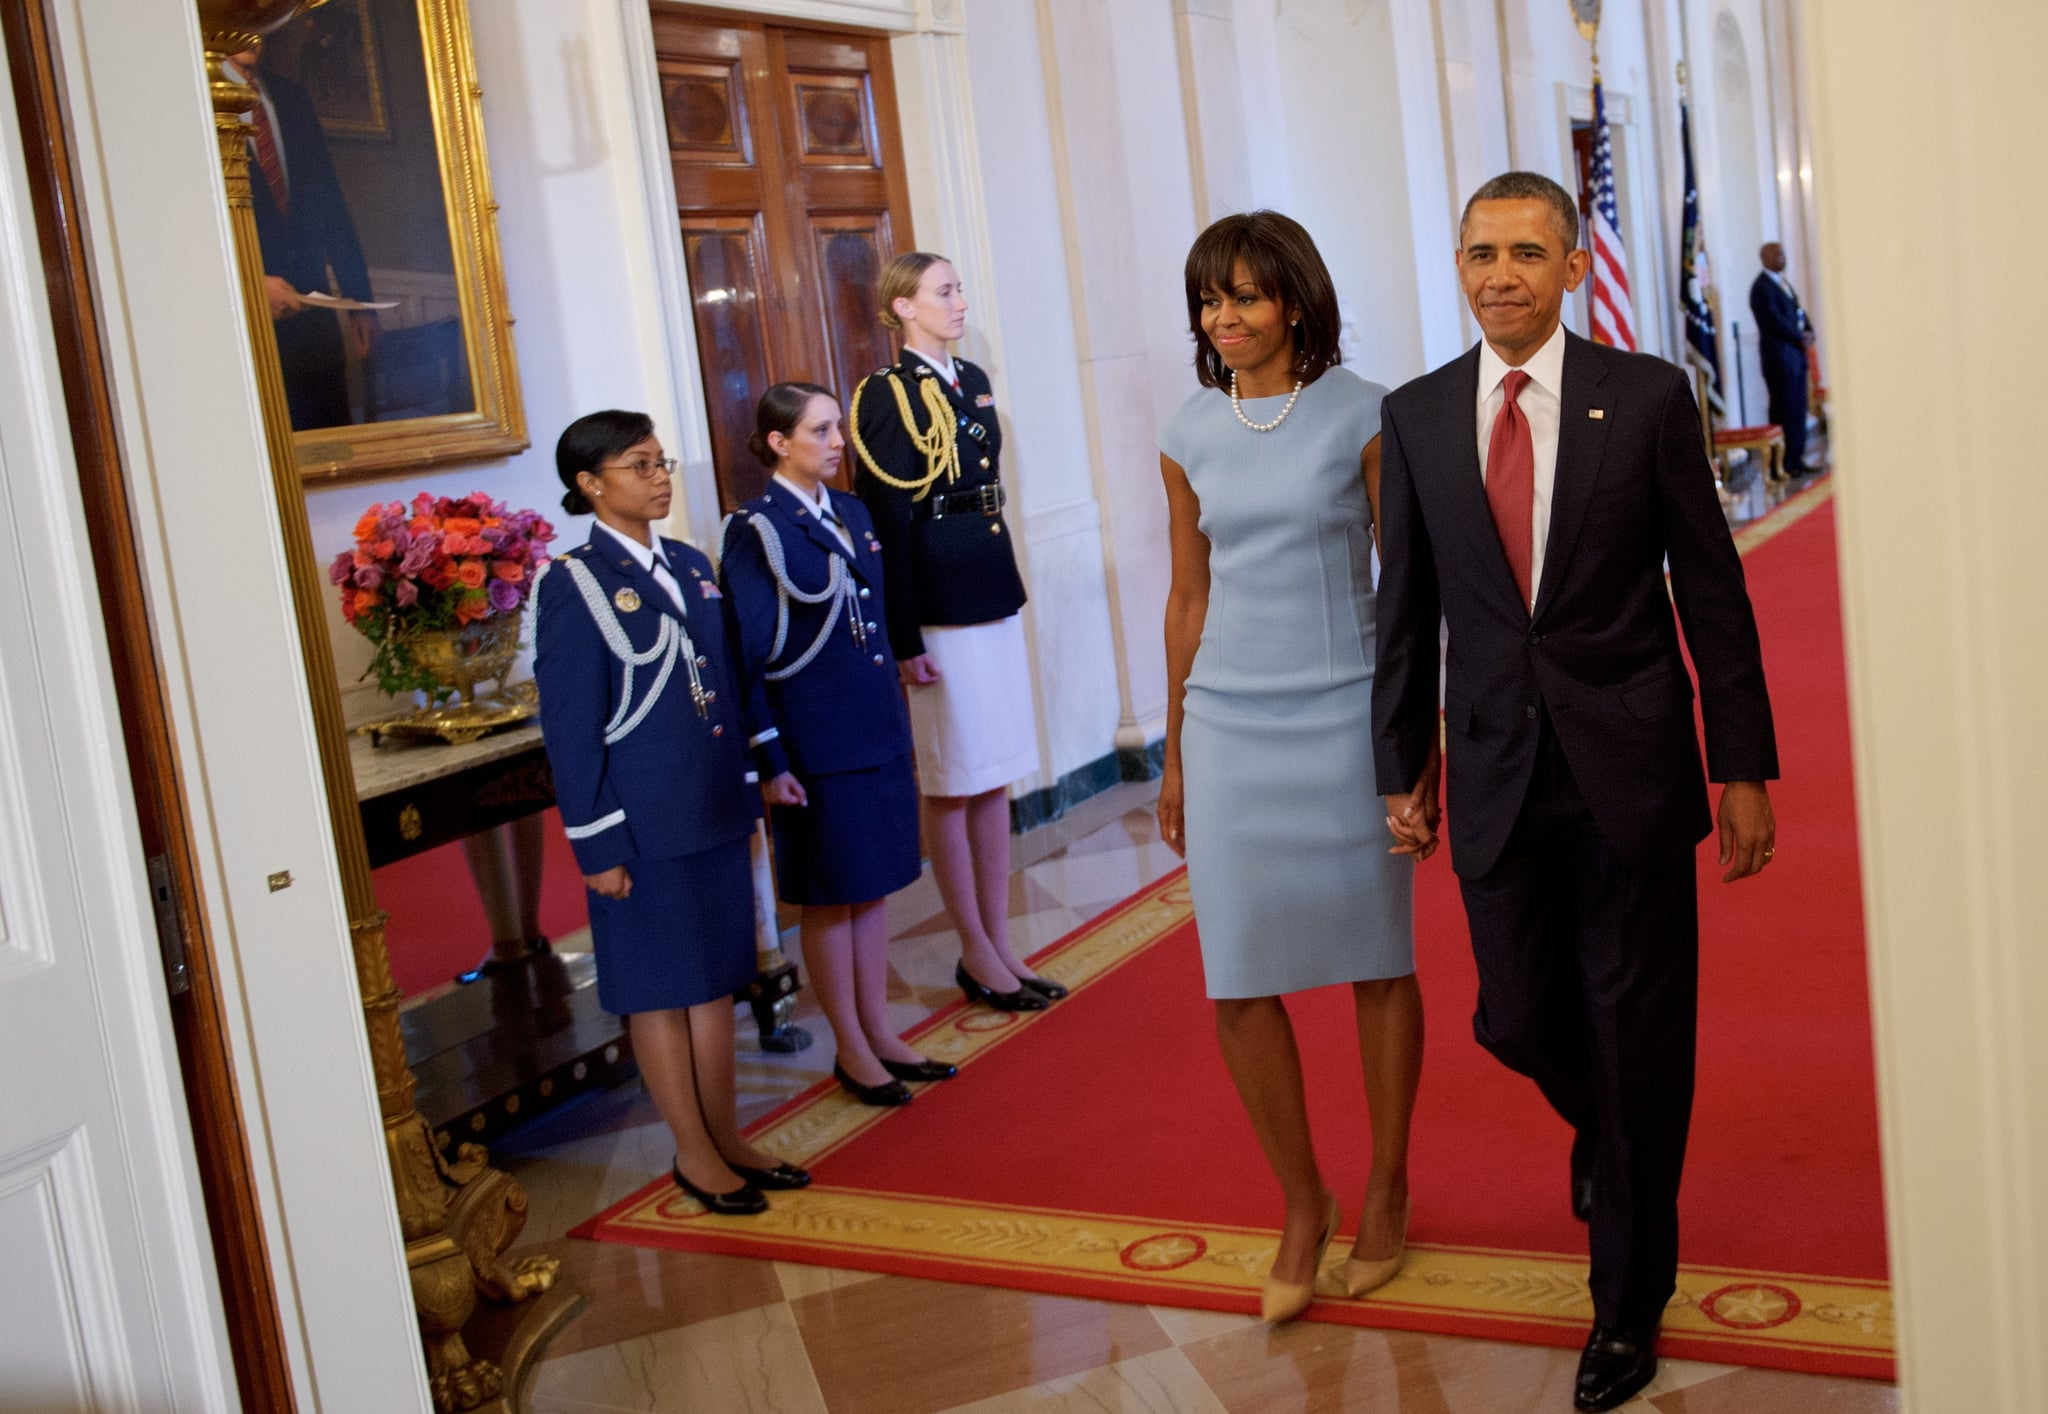 Michelle Obama wore a pastel blue Michael Kors sheath, along with pearls and nude pumps, to a medal of honor presentation in April.